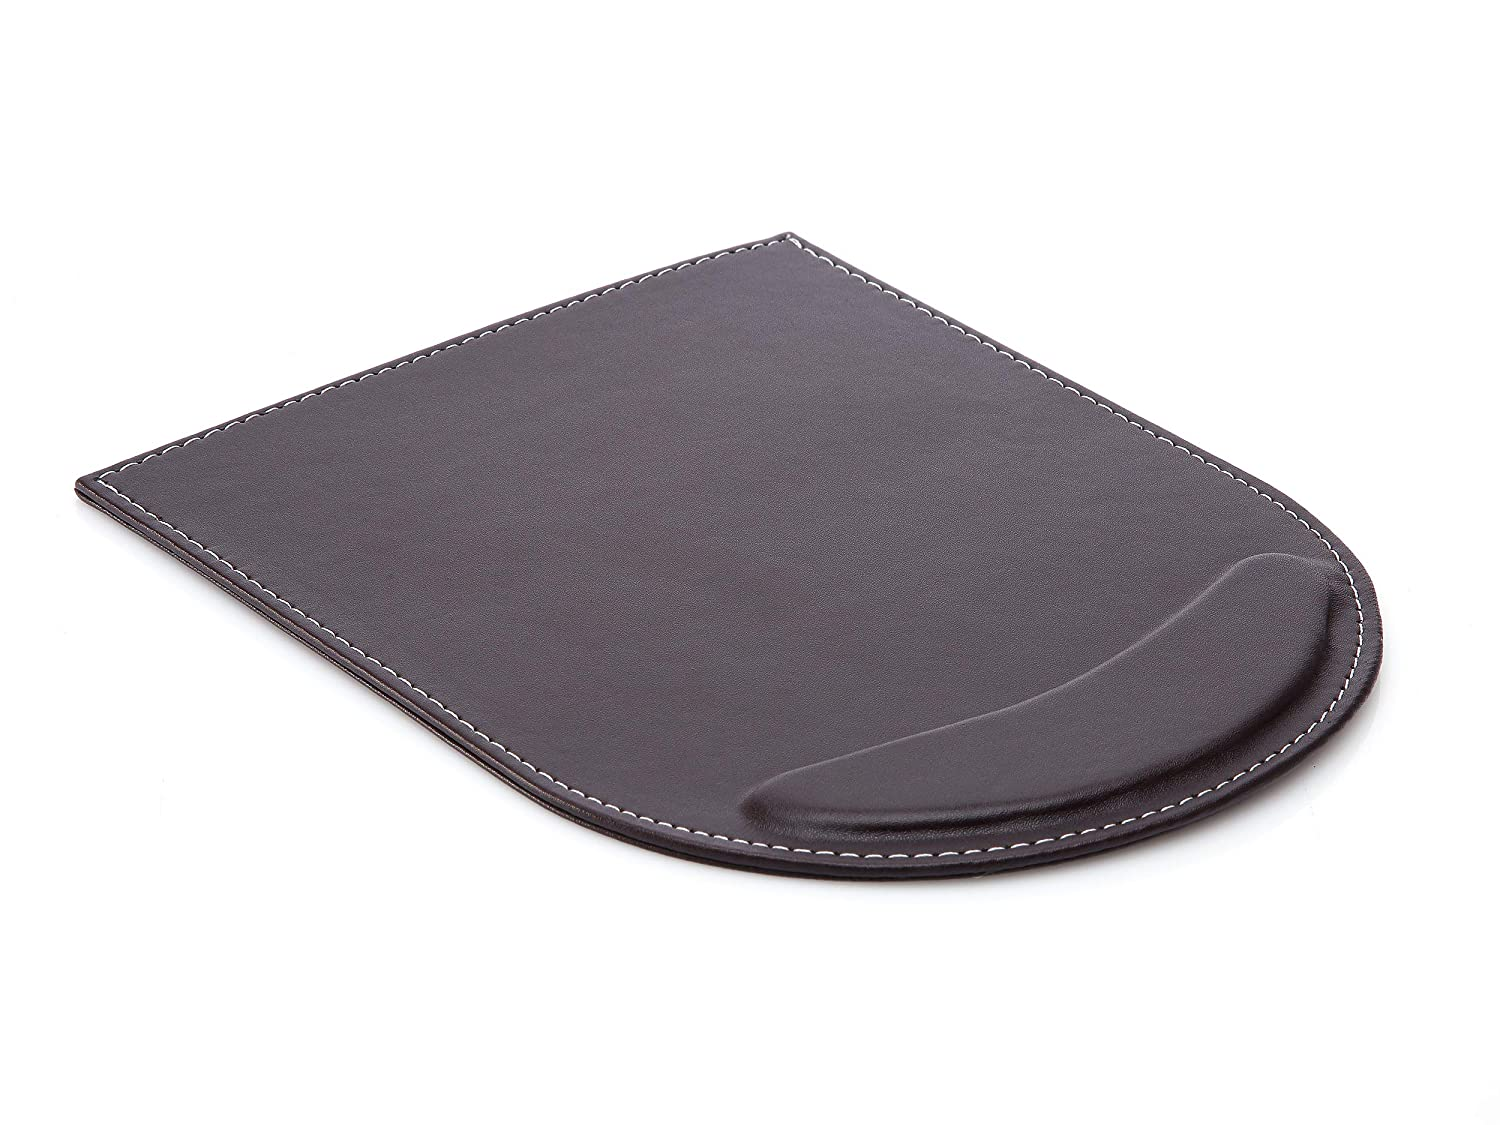 KINGFOM Leather Gaming Mouse Pad/Mat with Wrist Rest Support, Non Slip Mousepad - Large ZhongBang A183